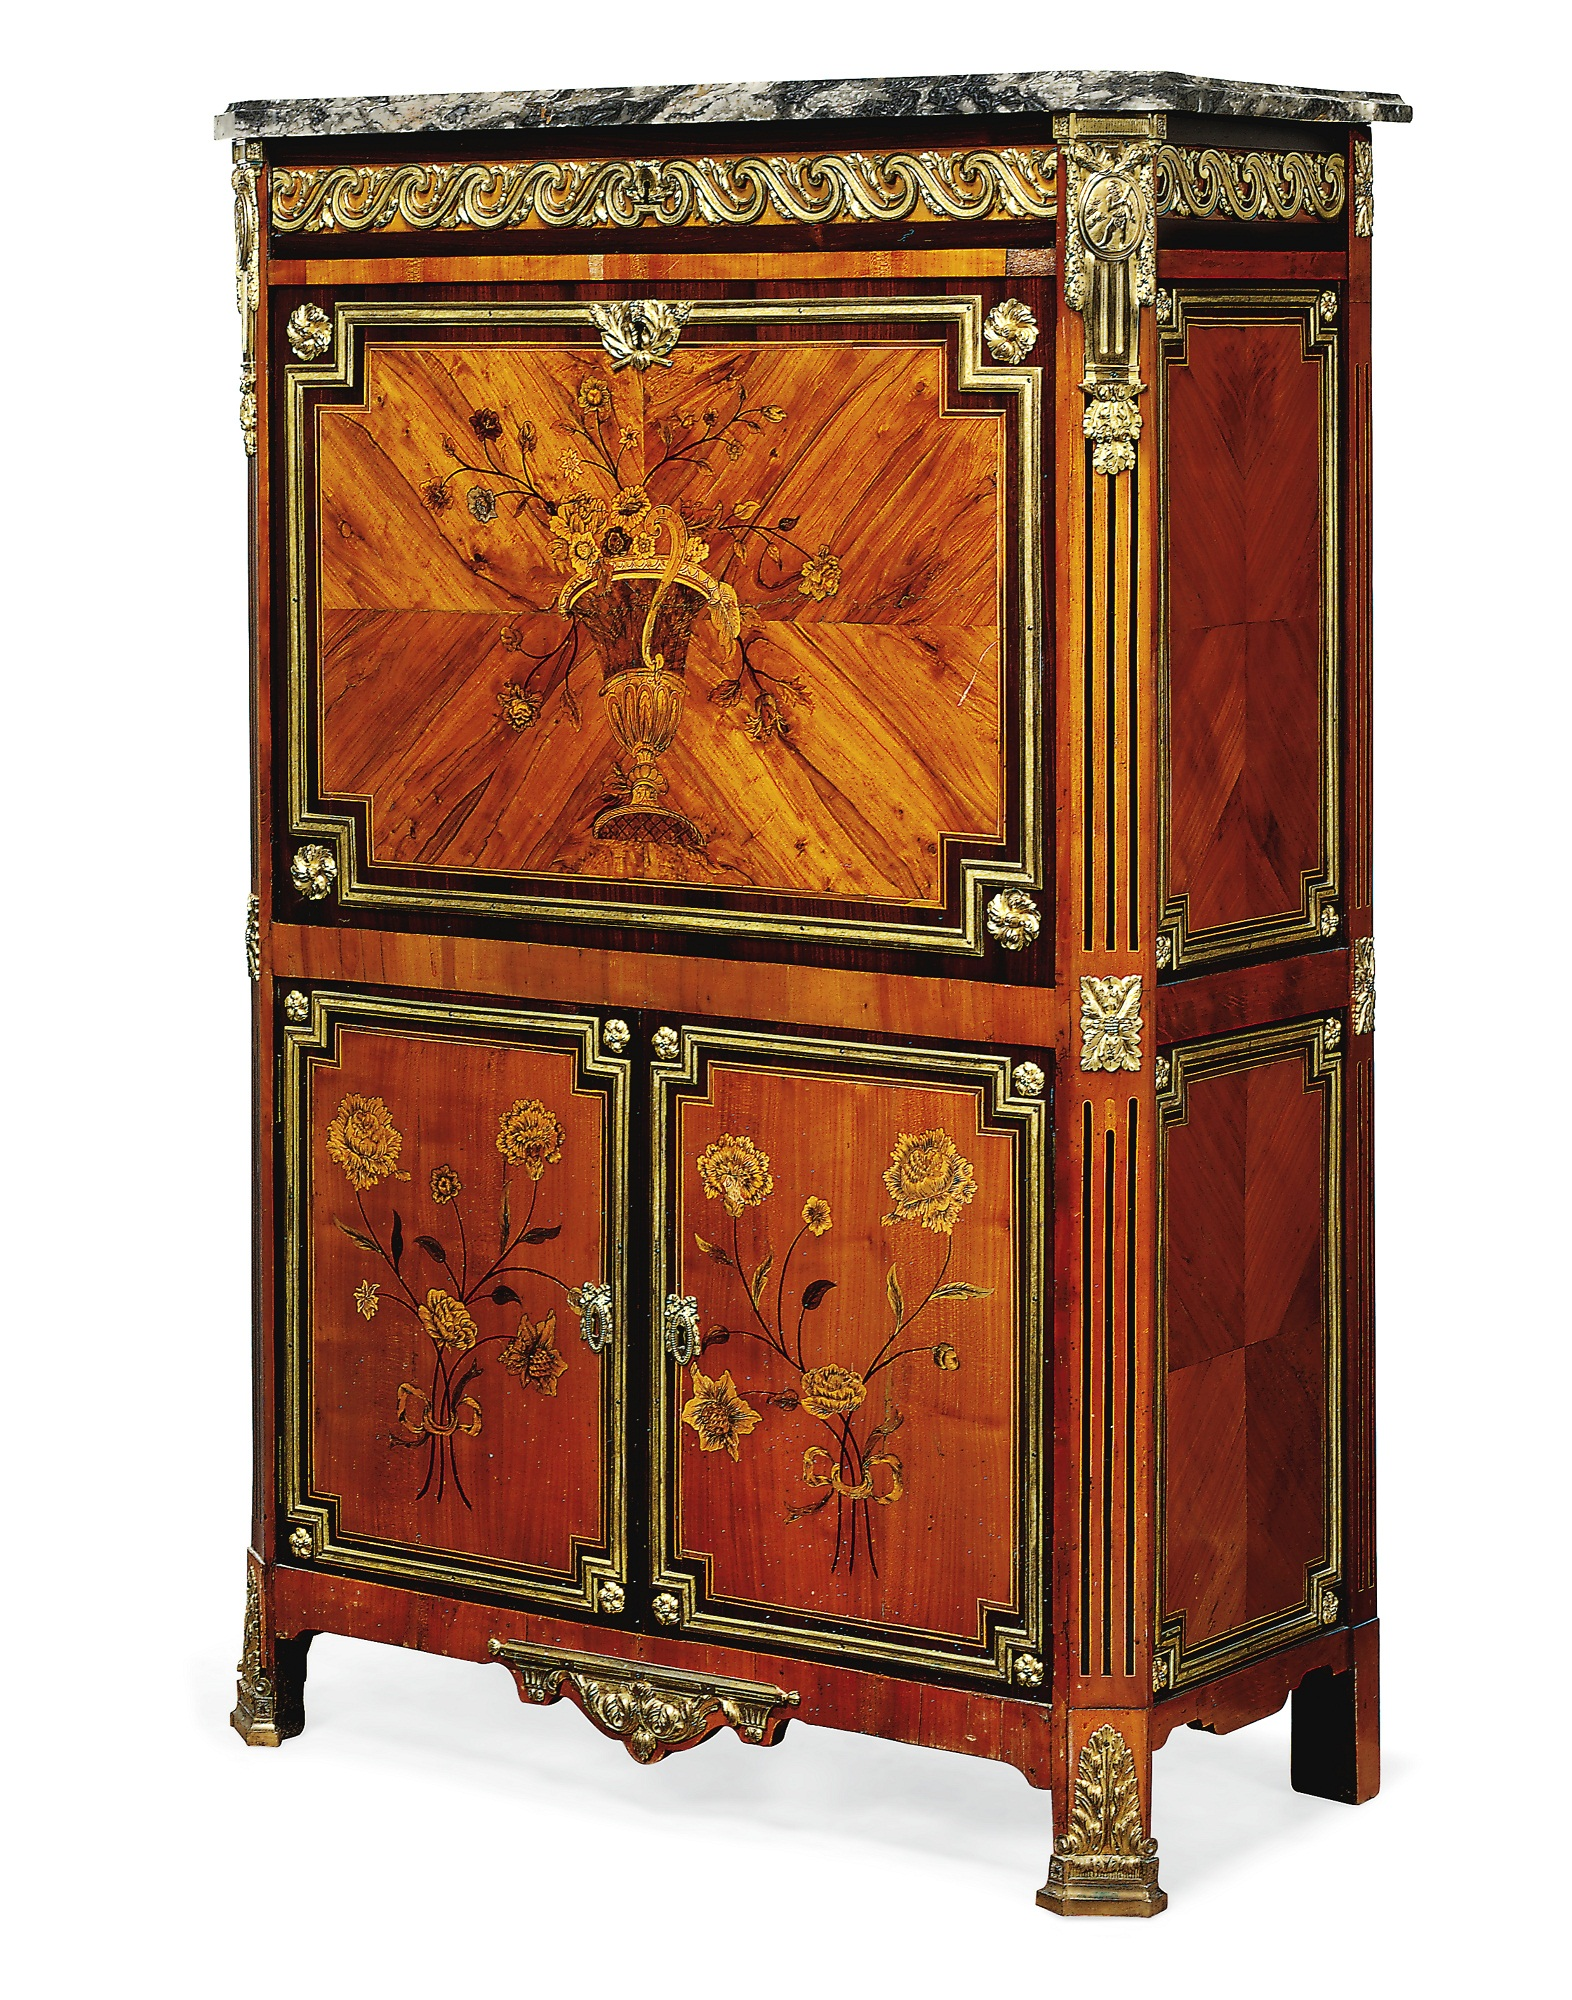 QUALITY ANTIQUE FURNITURE FROM AN IRISH COUNTRY HOUSE ...